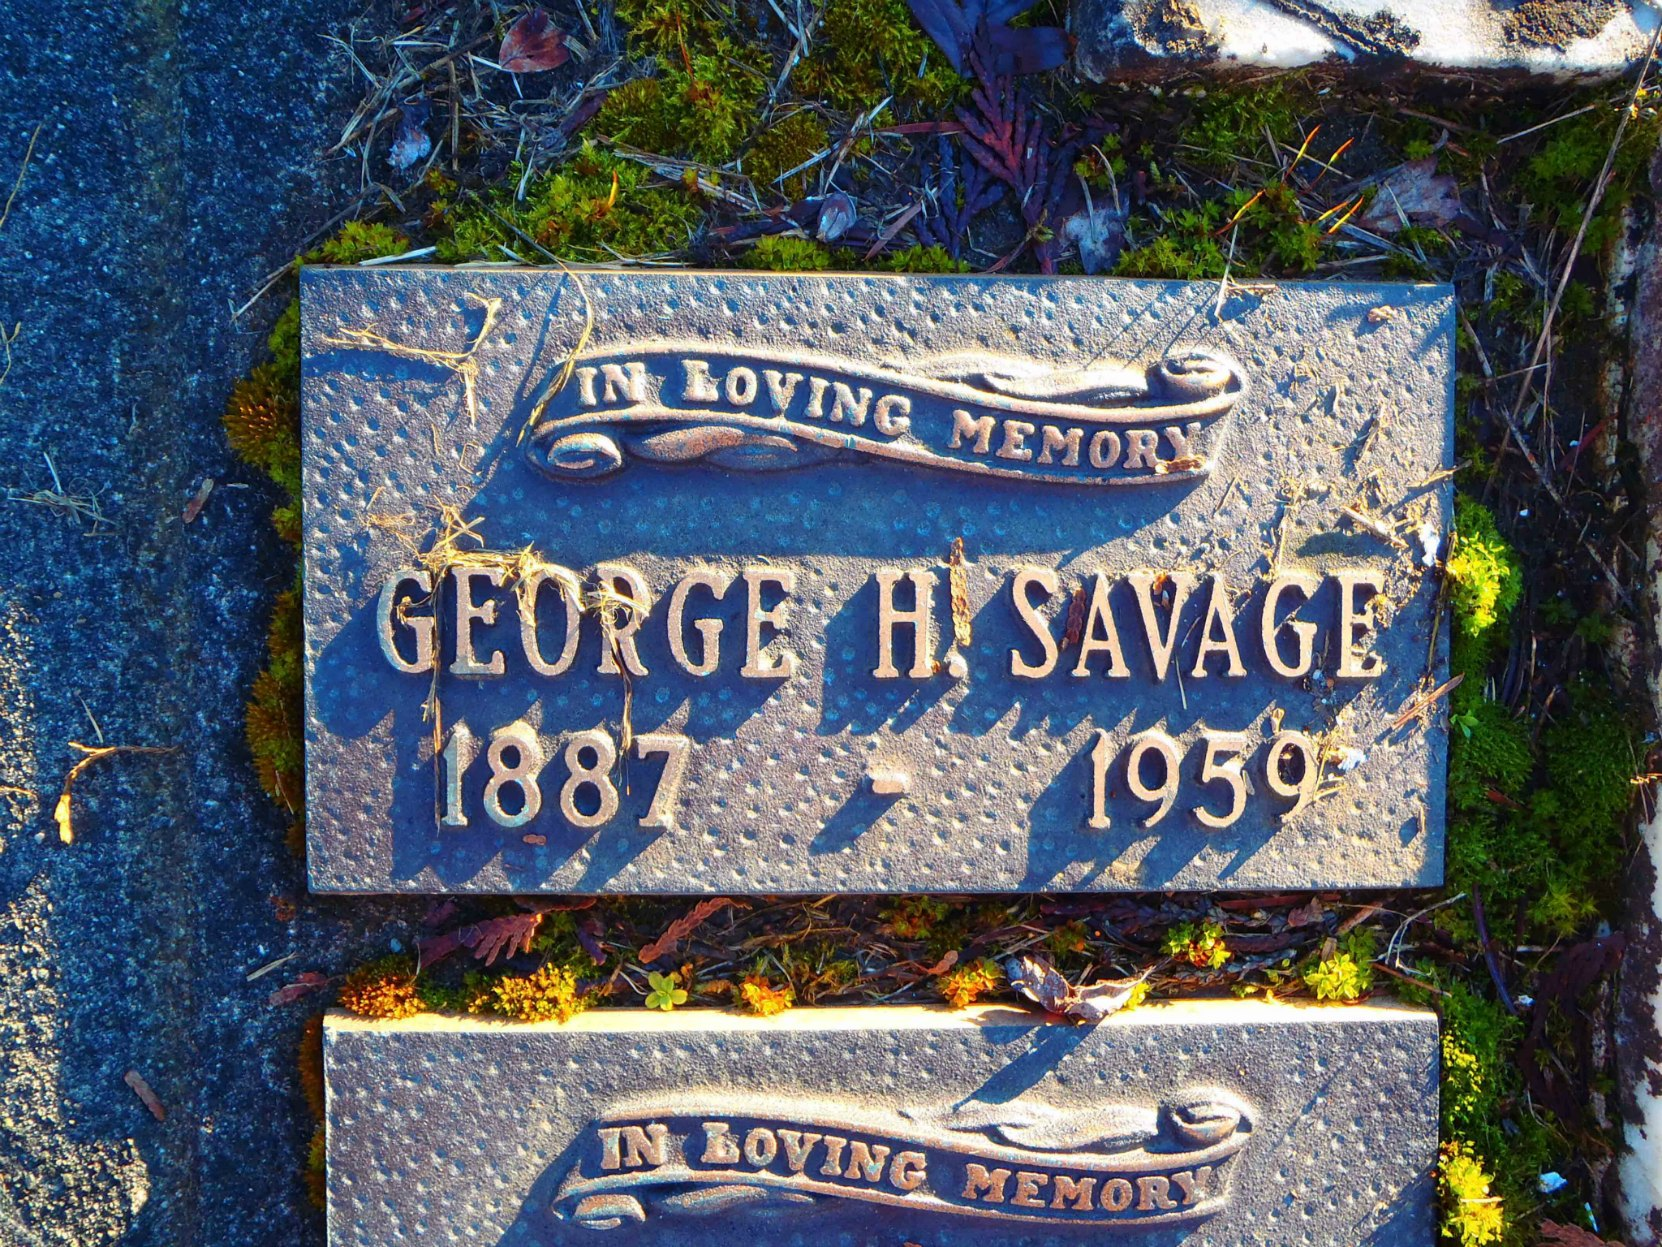 George Henry Savage, grave marker, St. Mary's Somenos Anglican cemetery